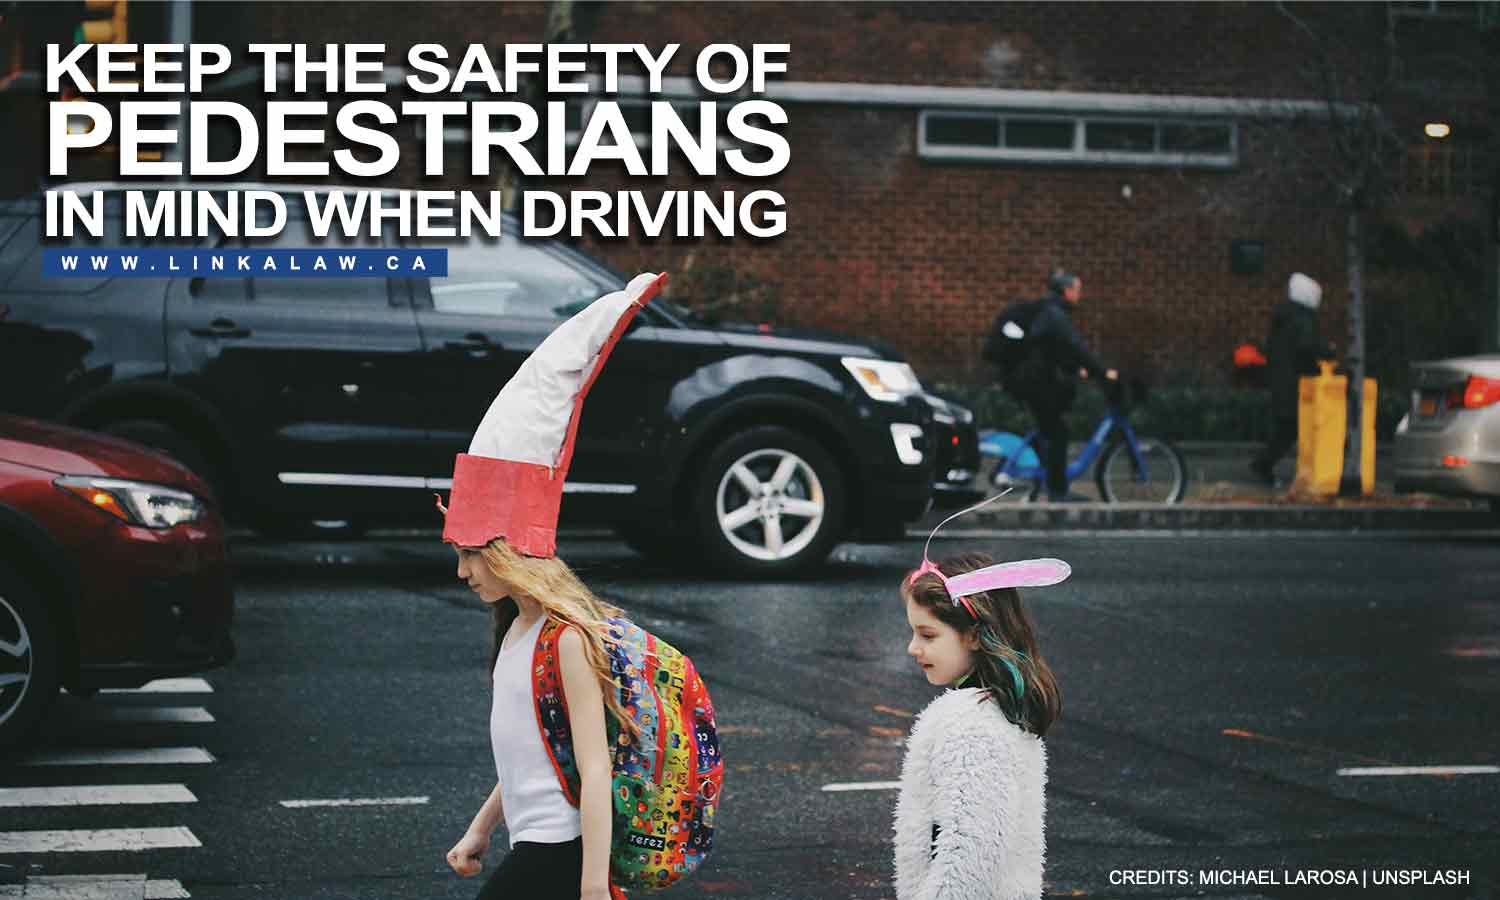 Keep the safety of pedestrians in mind when driving